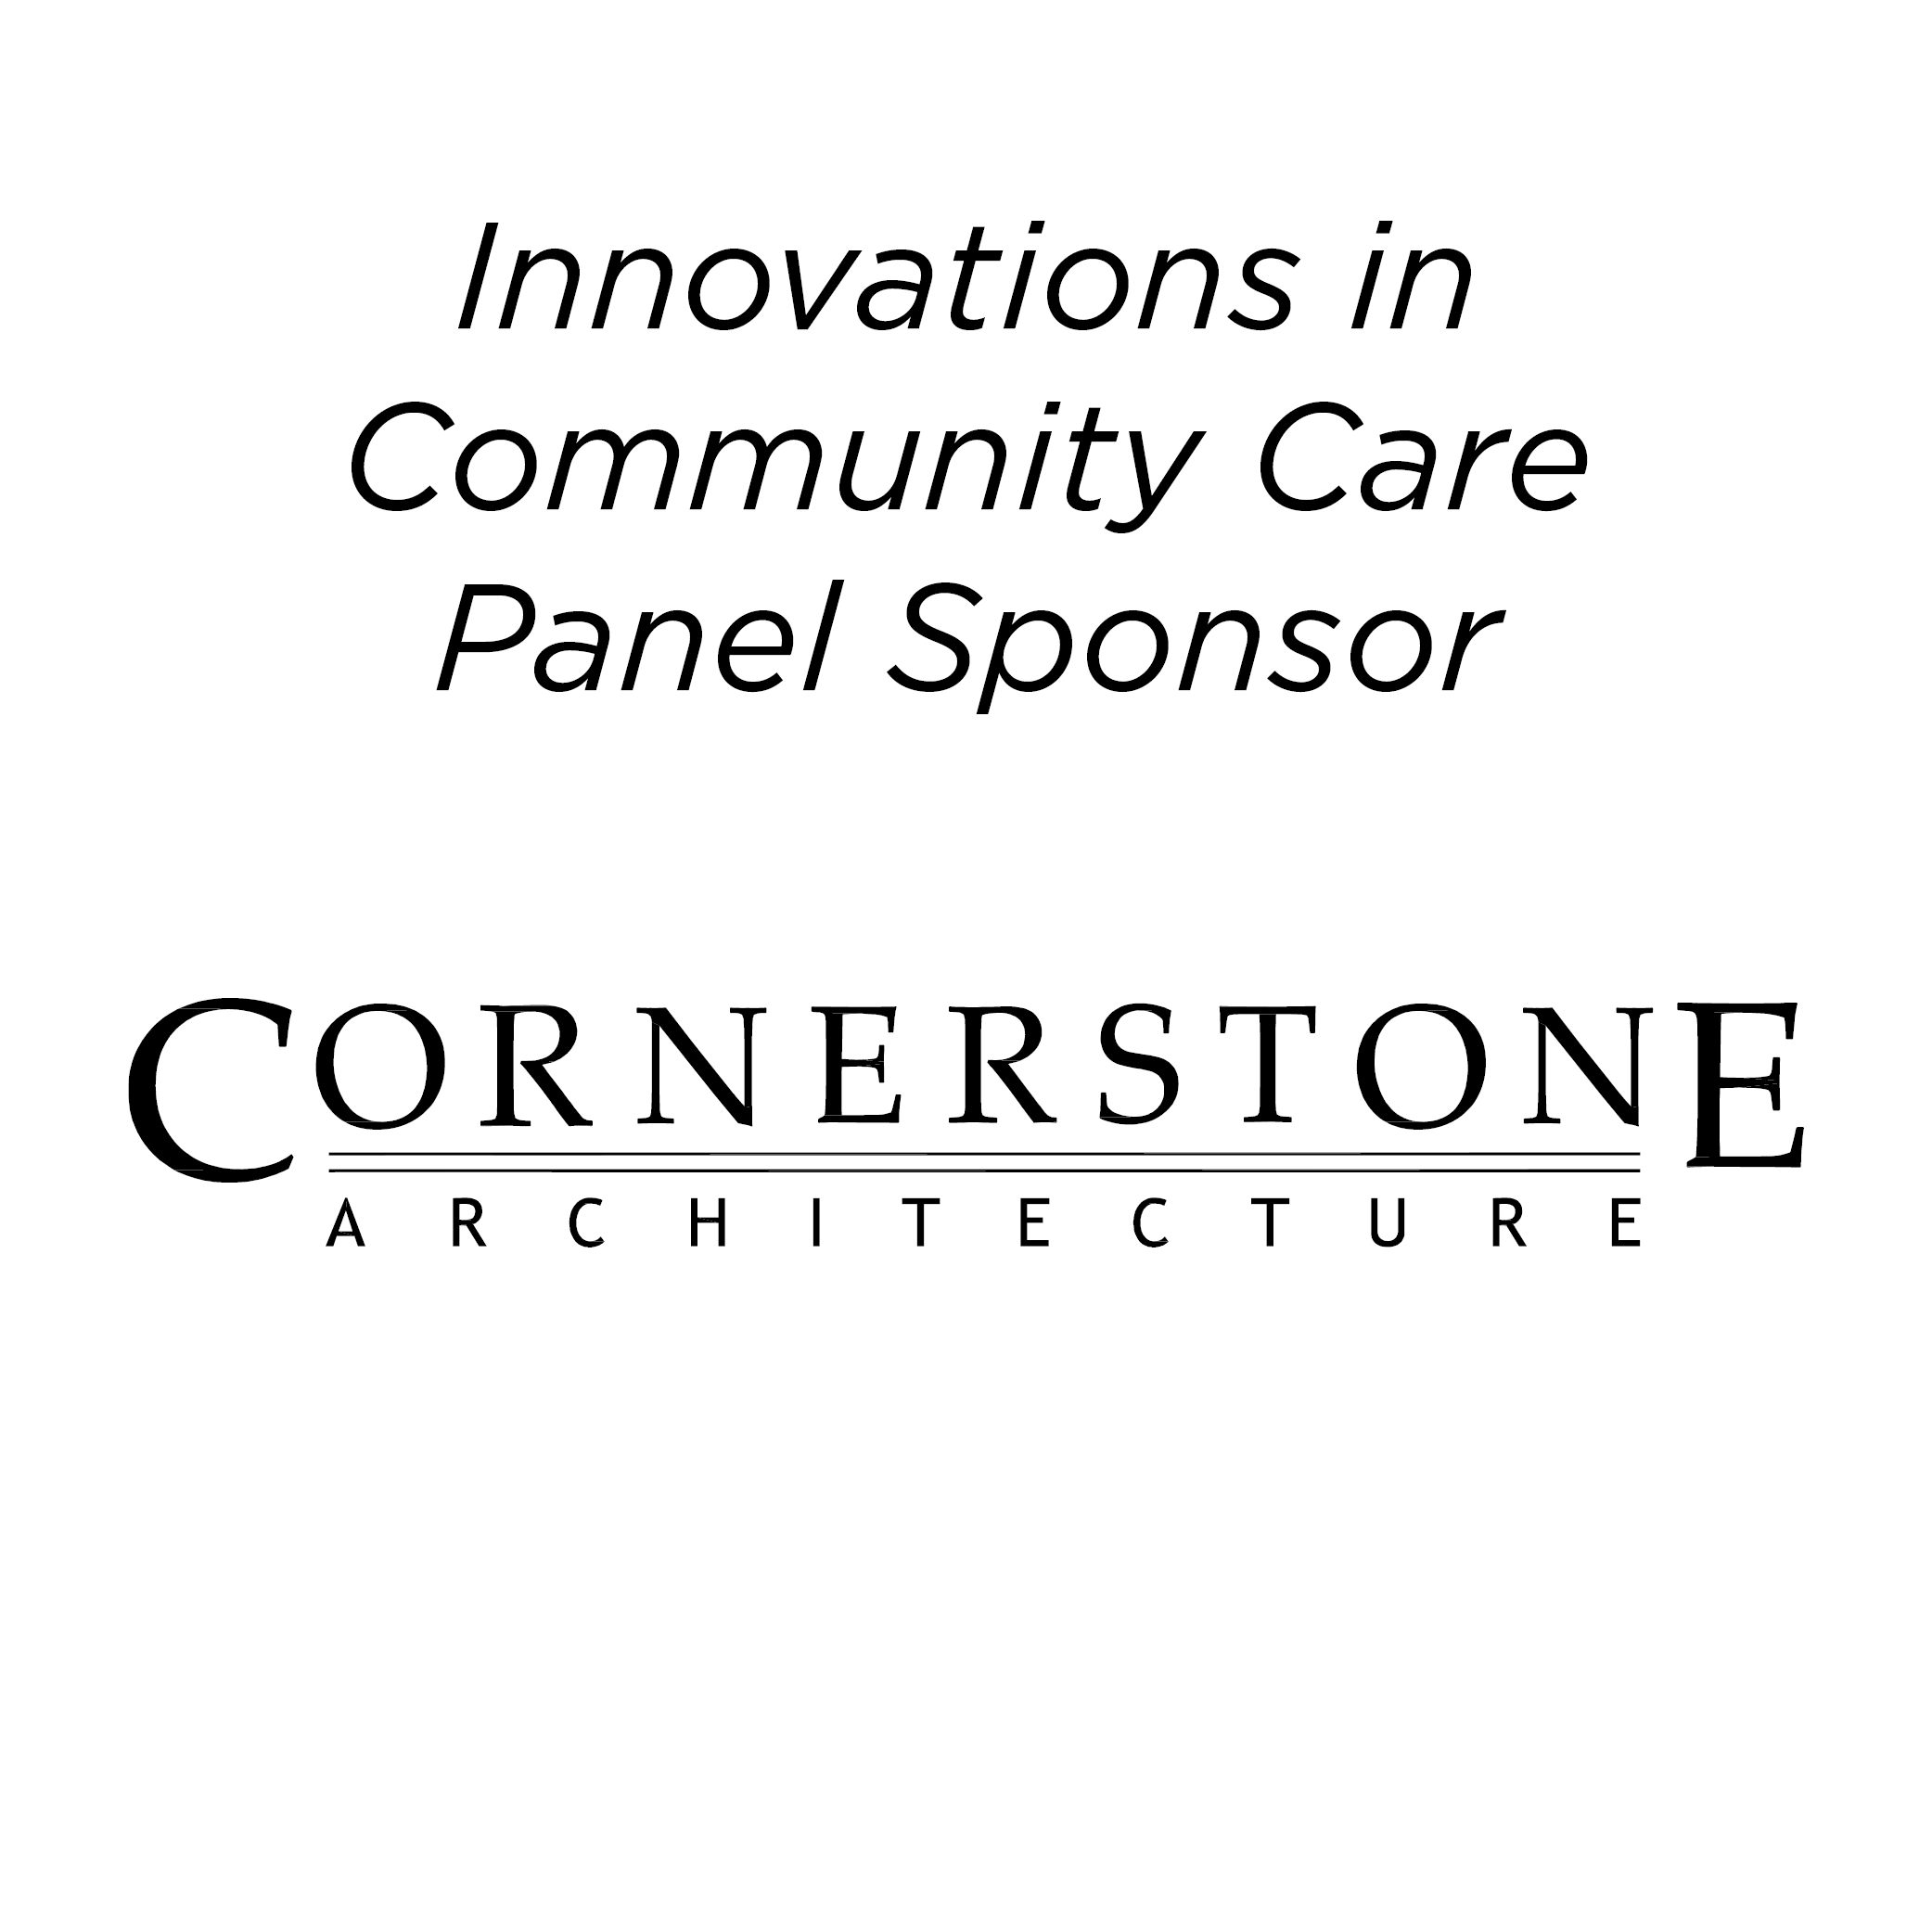 Cornerstone Architecture - Afternoon Panel